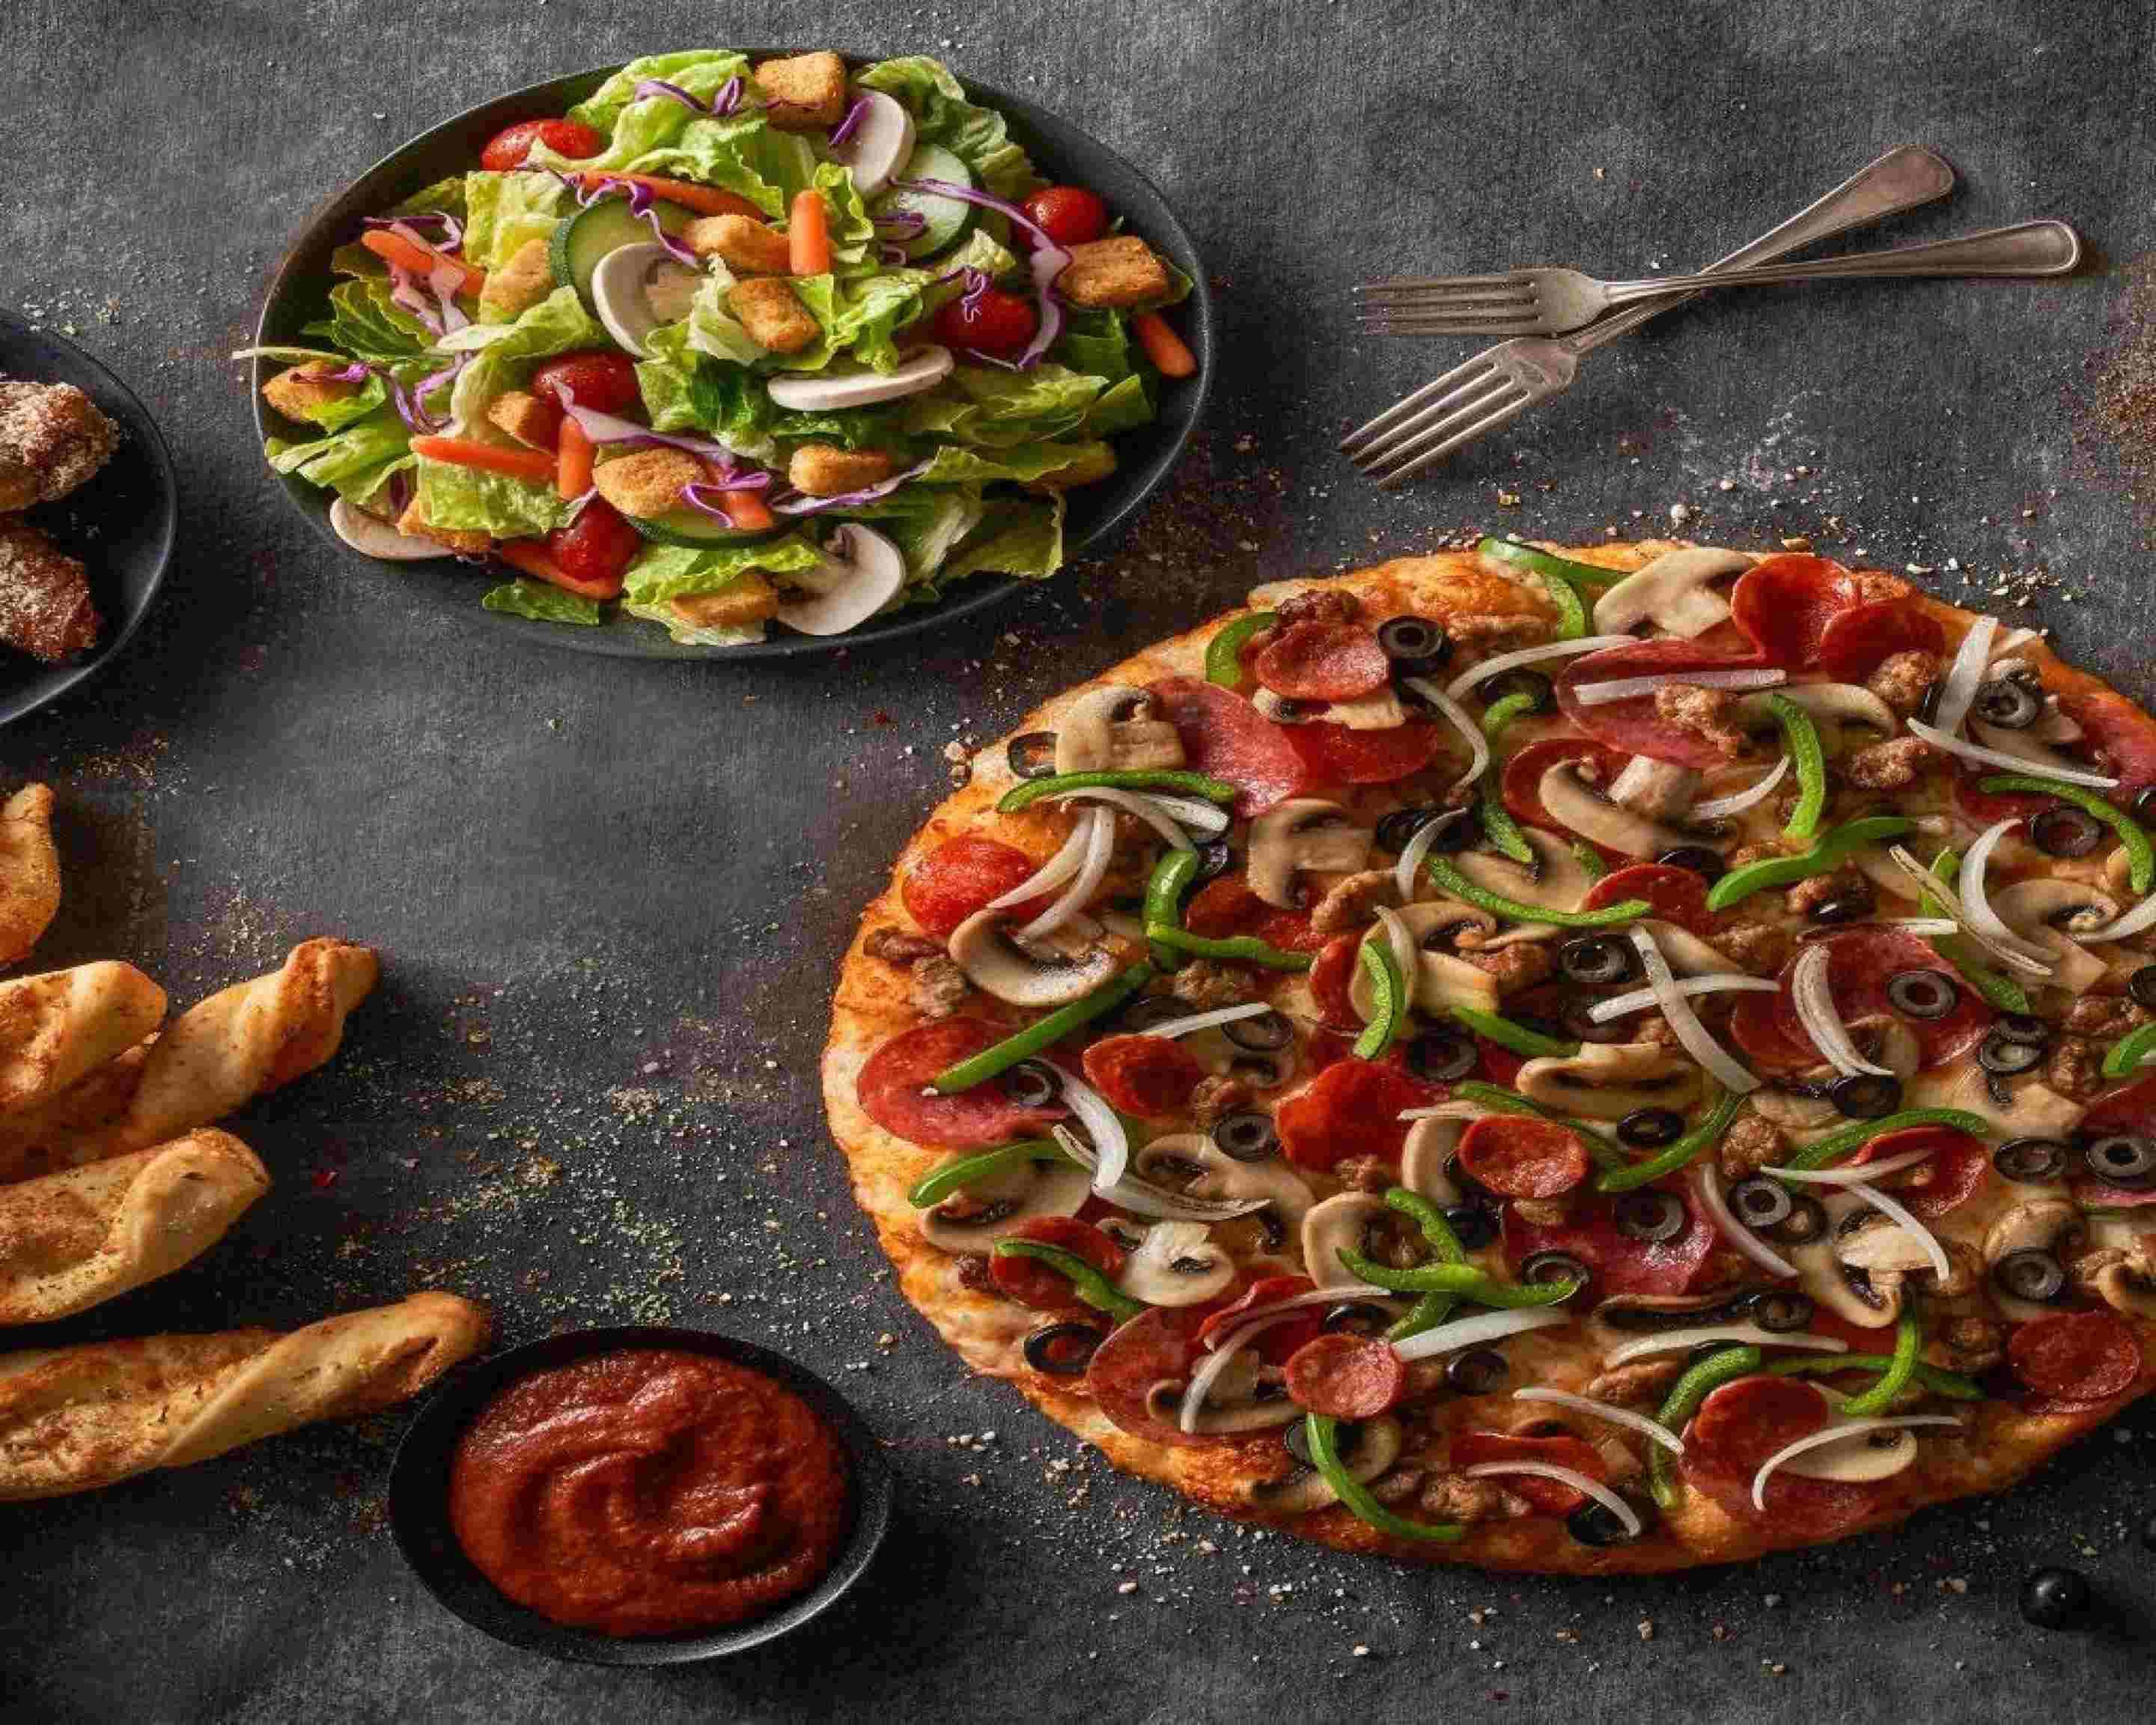 Order Round Table Pizza 31775 Date Palm Drive Delivery Online Springs Menu Prices Uber Eats